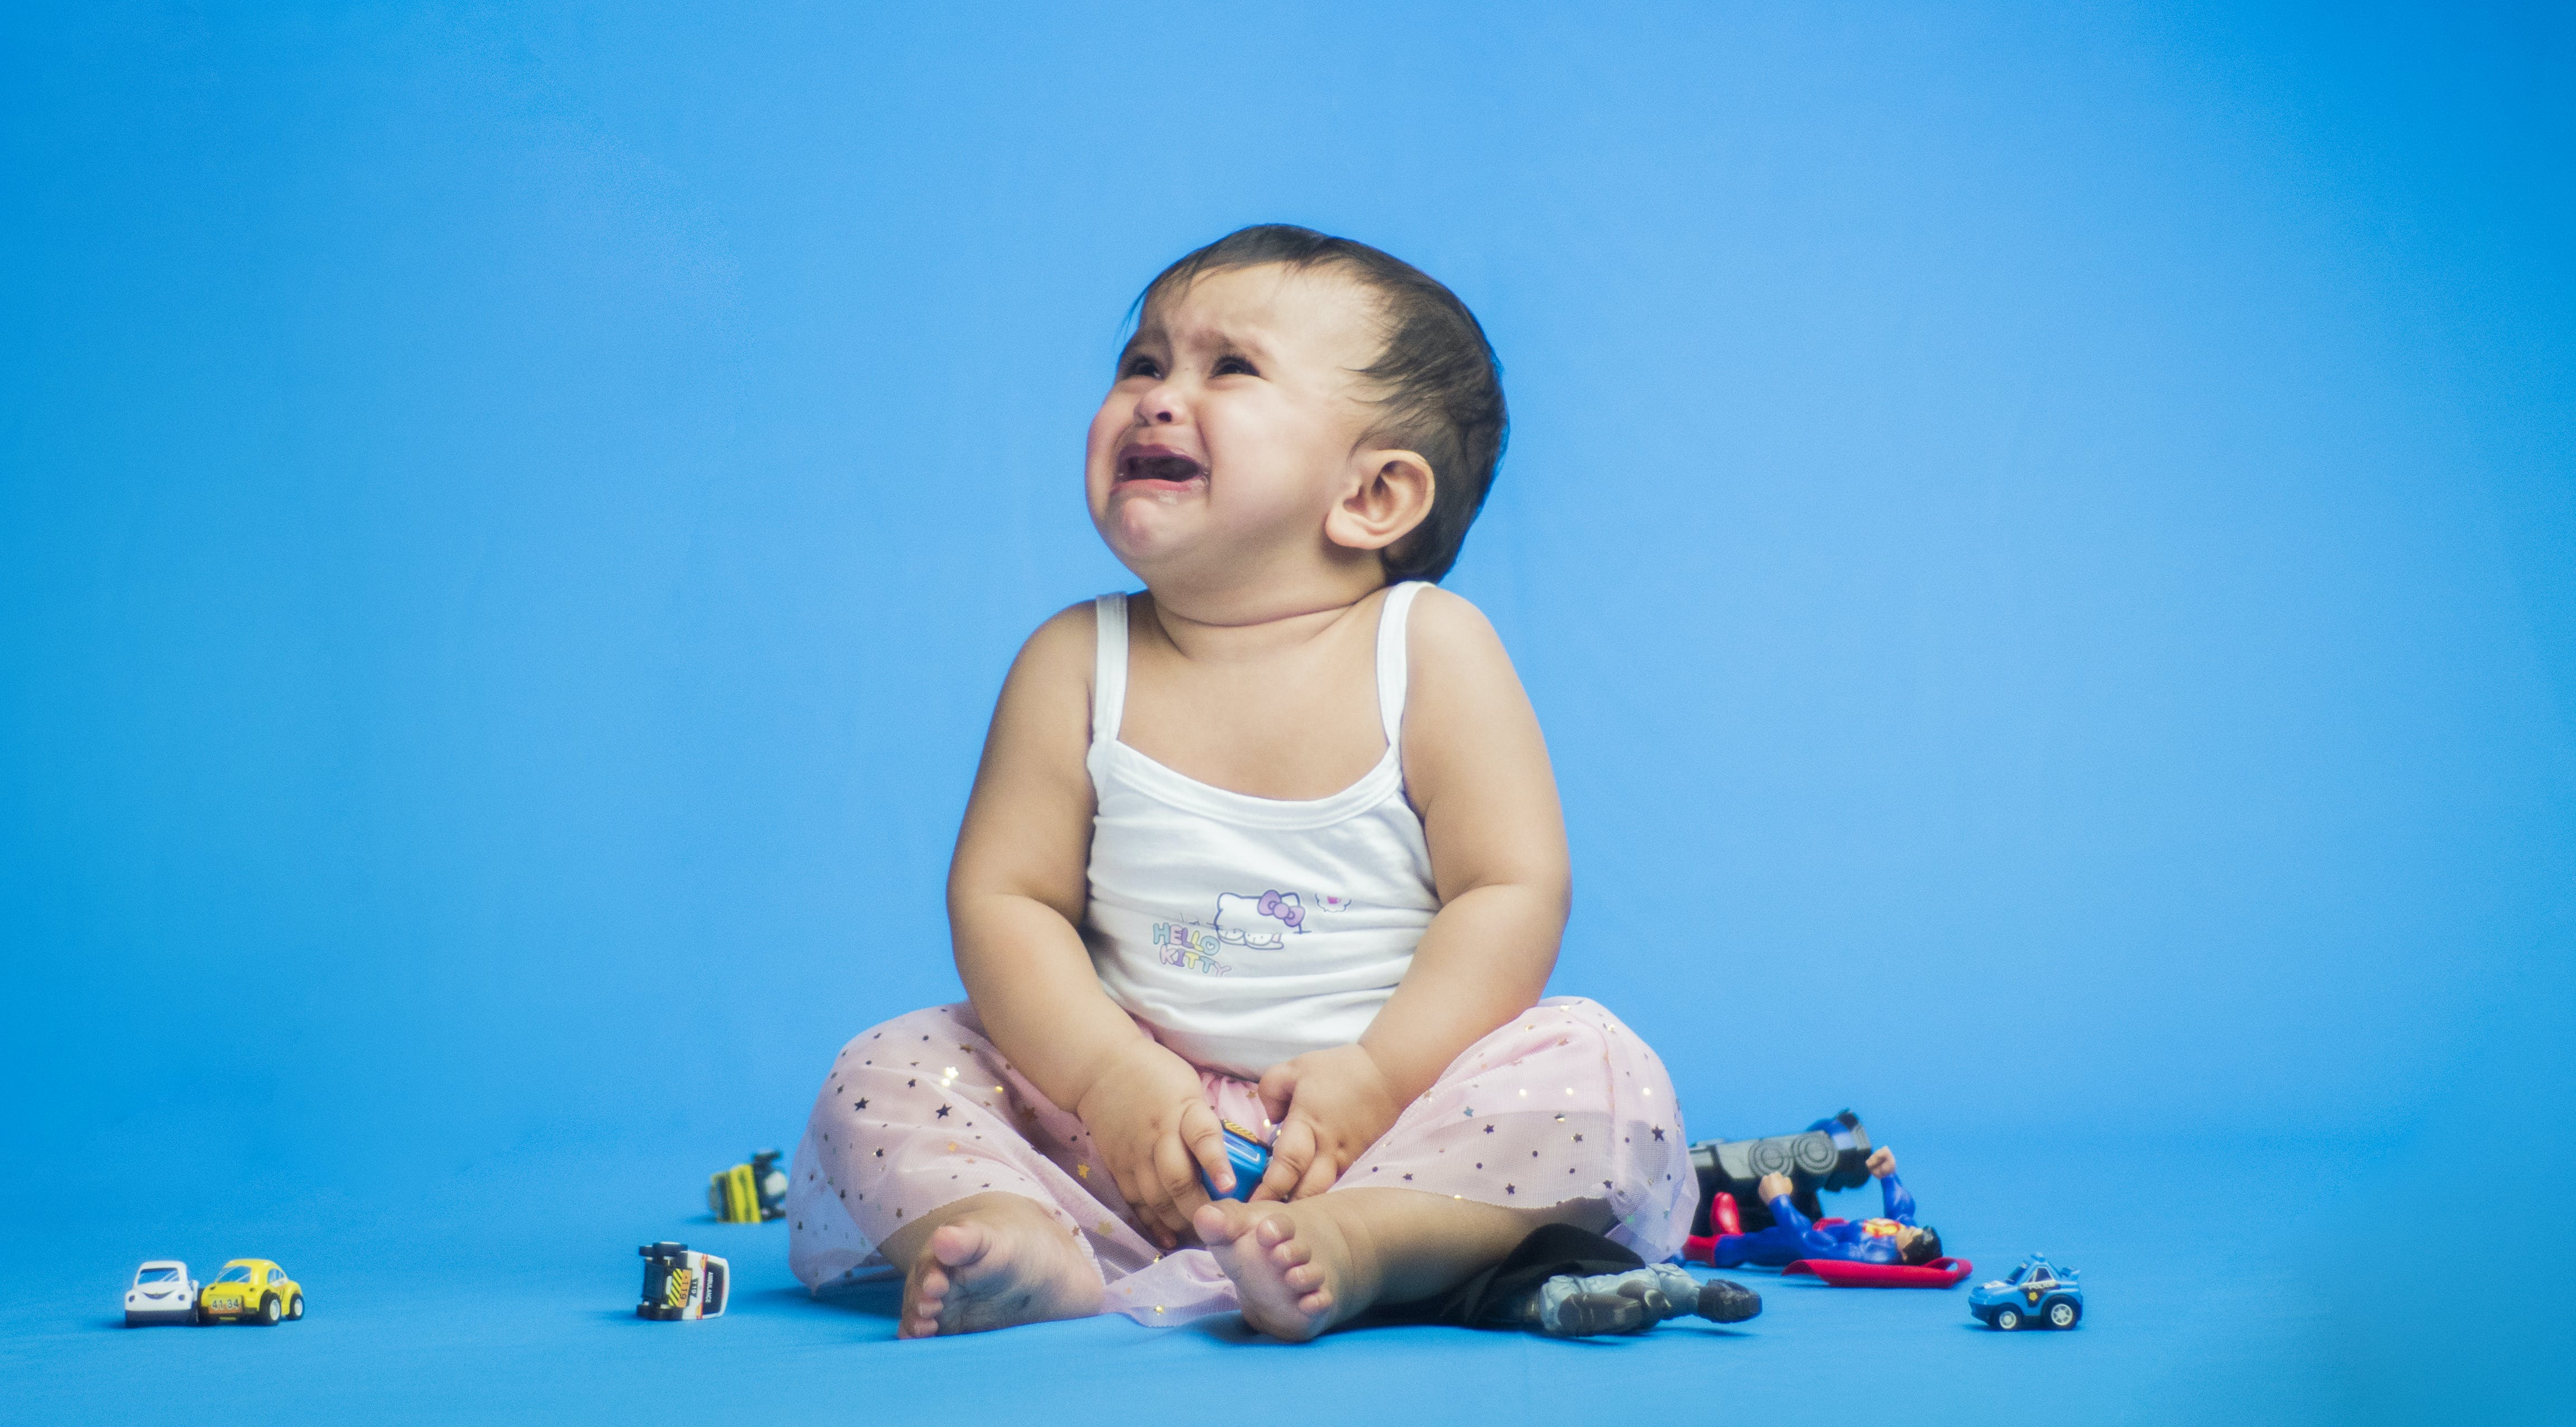 Free stock photo of baby, blue background, crying, cute